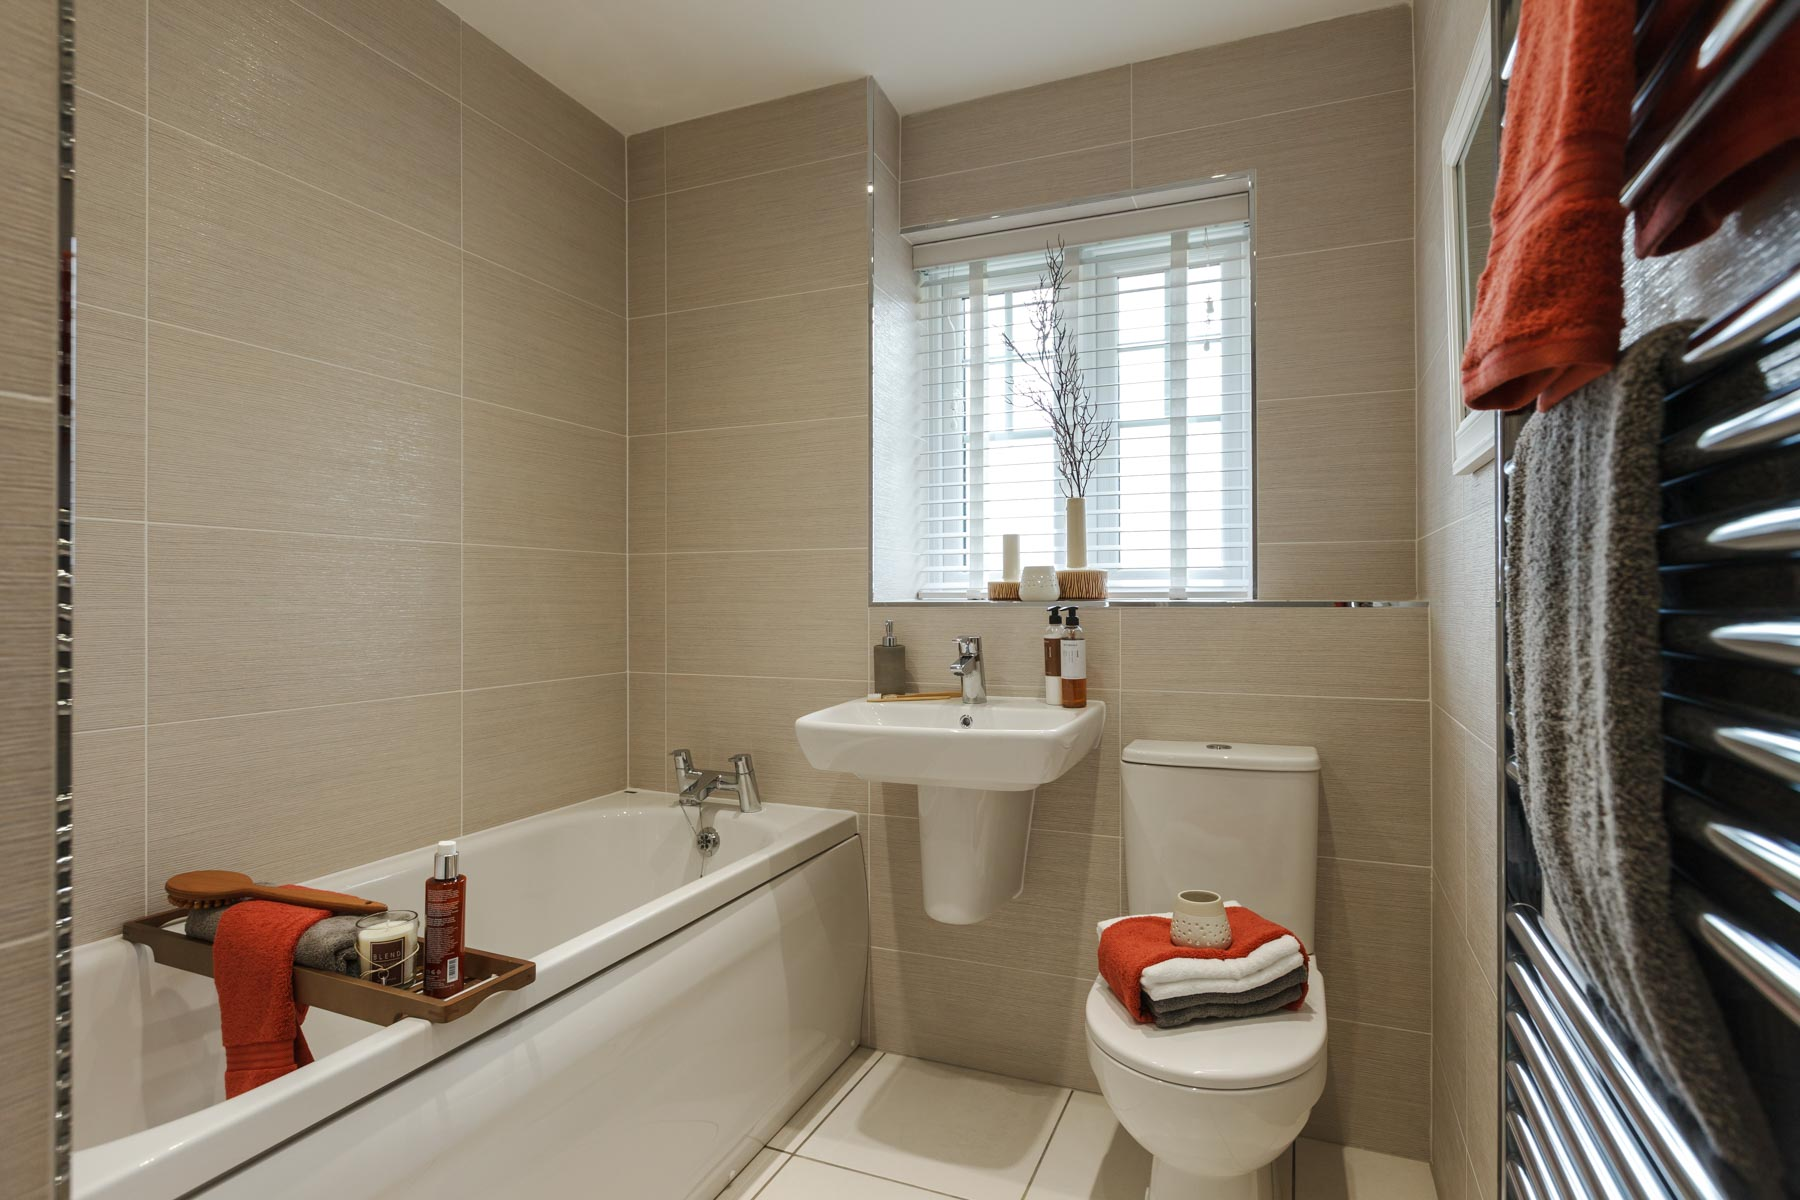 Haddenham bathroom 2